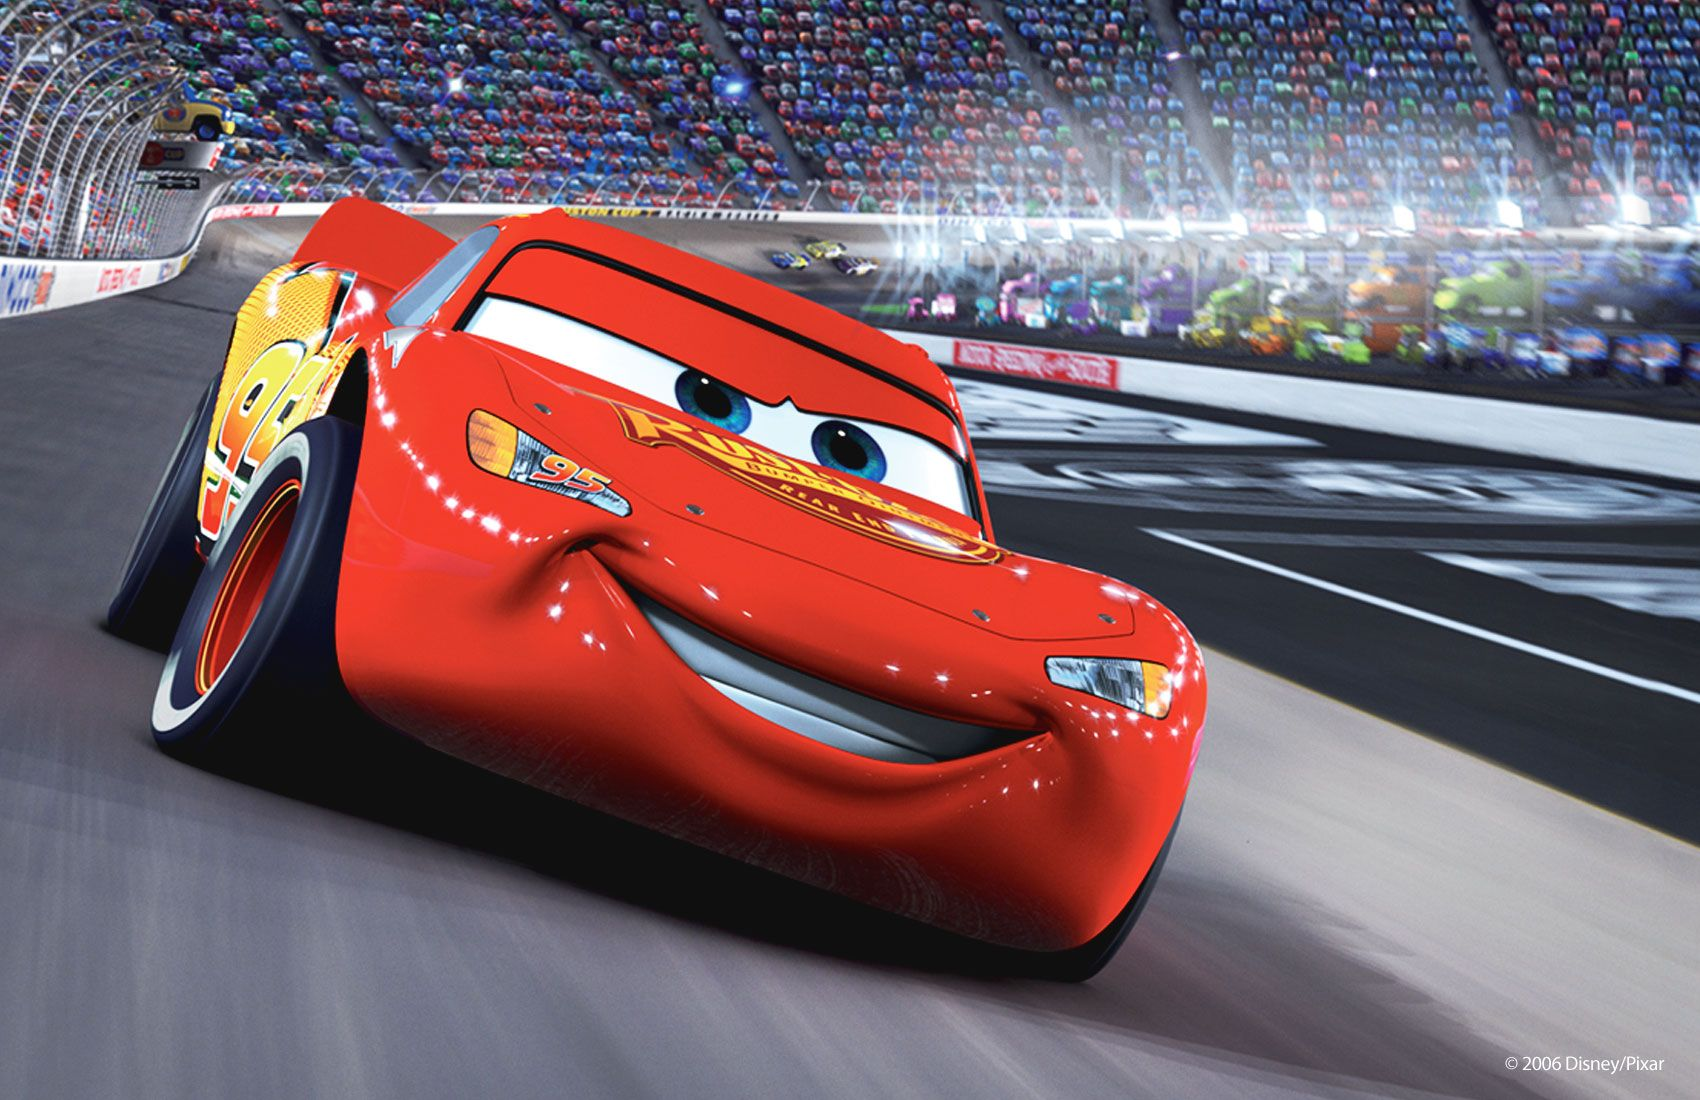 Pixar Cars Car Driving Another Car